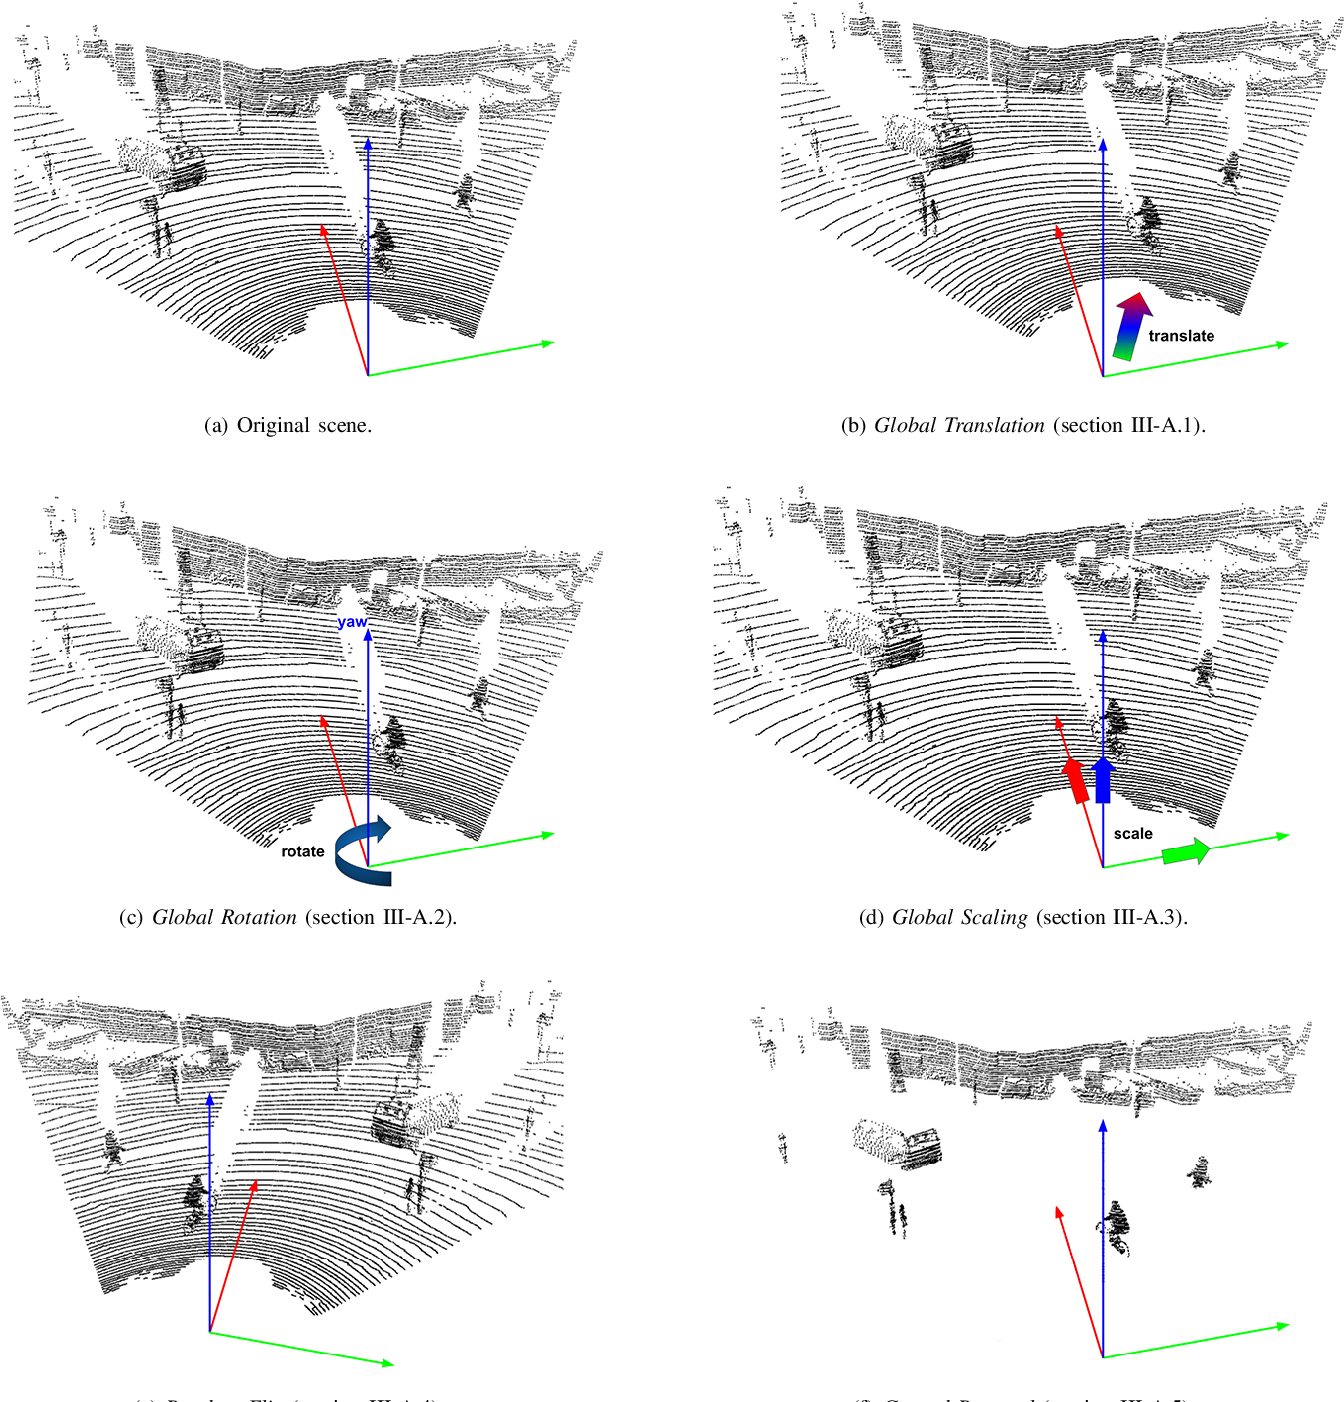 Figure 1 for Quantifying Data Augmentation for LiDAR based 3D Object Detection